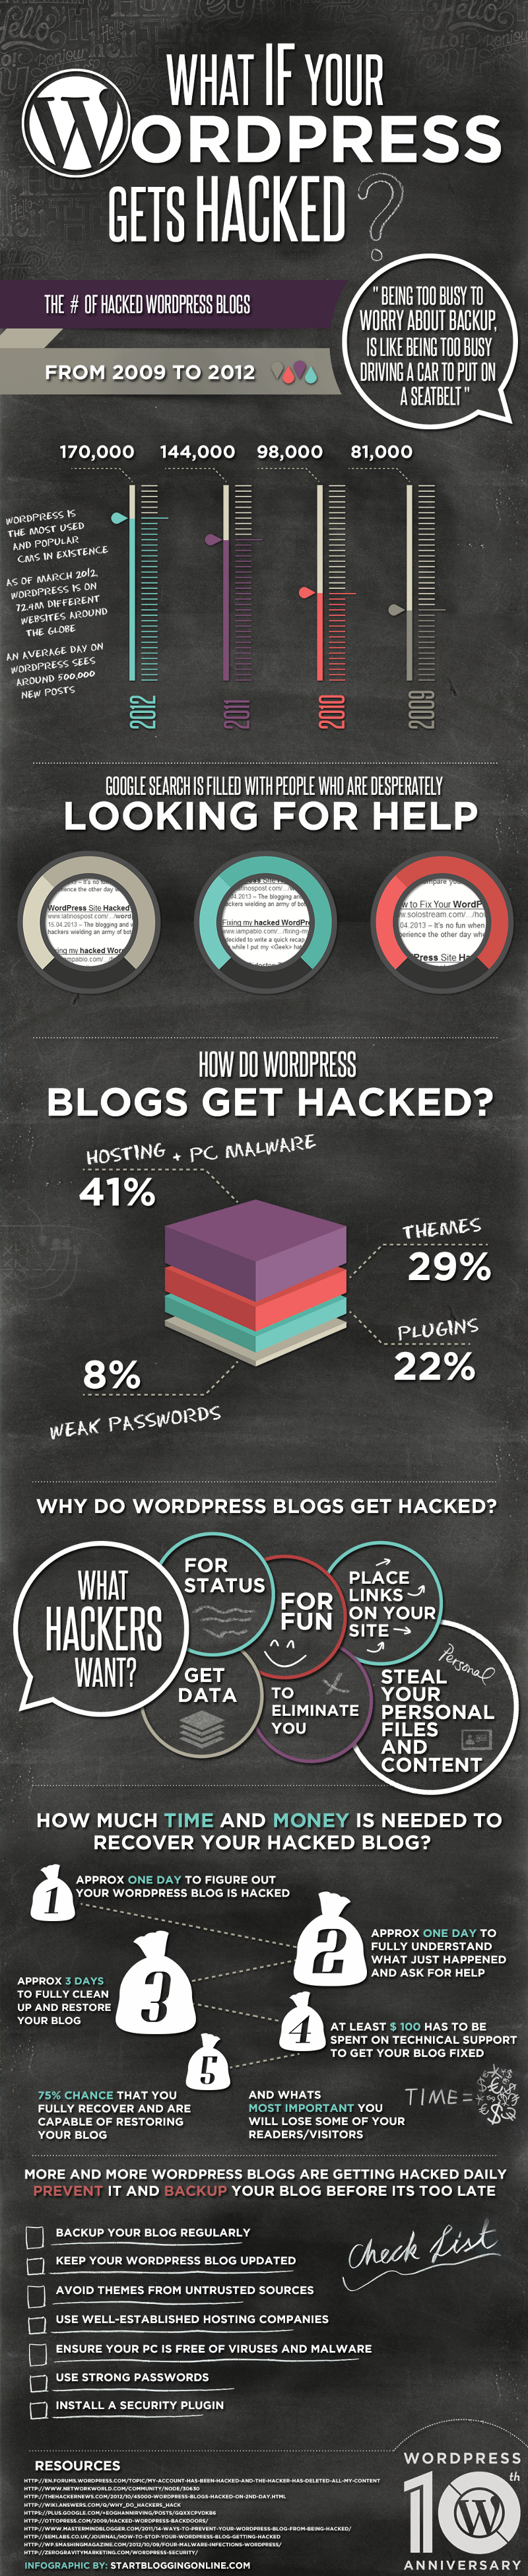 Securing Your WordPress Site